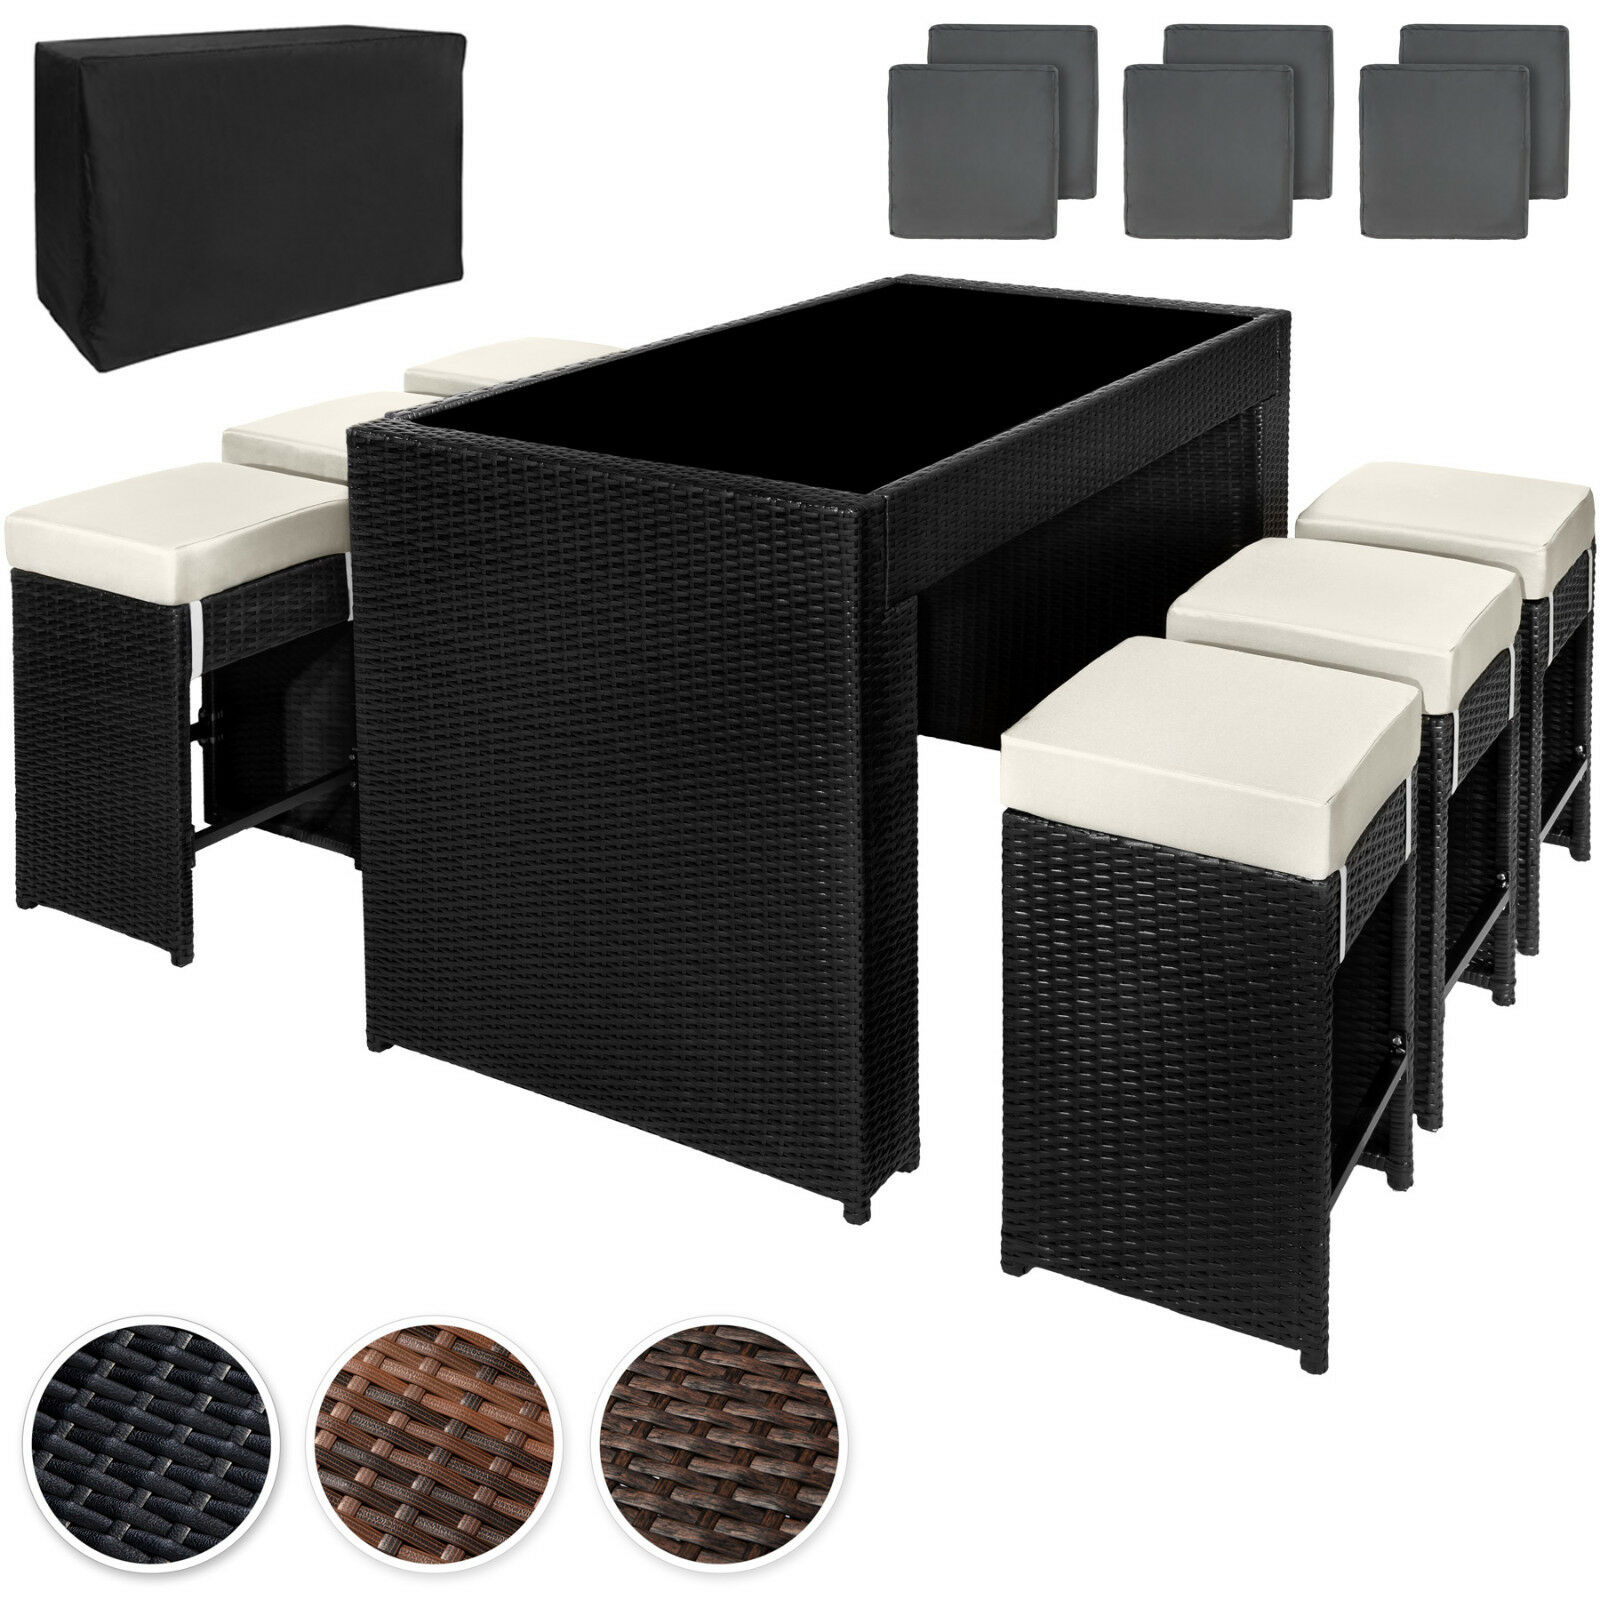 poly rattan aluminium barset mit 6 barhocker gartenm bel sitzgruppe lounge theke eur 299 99. Black Bedroom Furniture Sets. Home Design Ideas